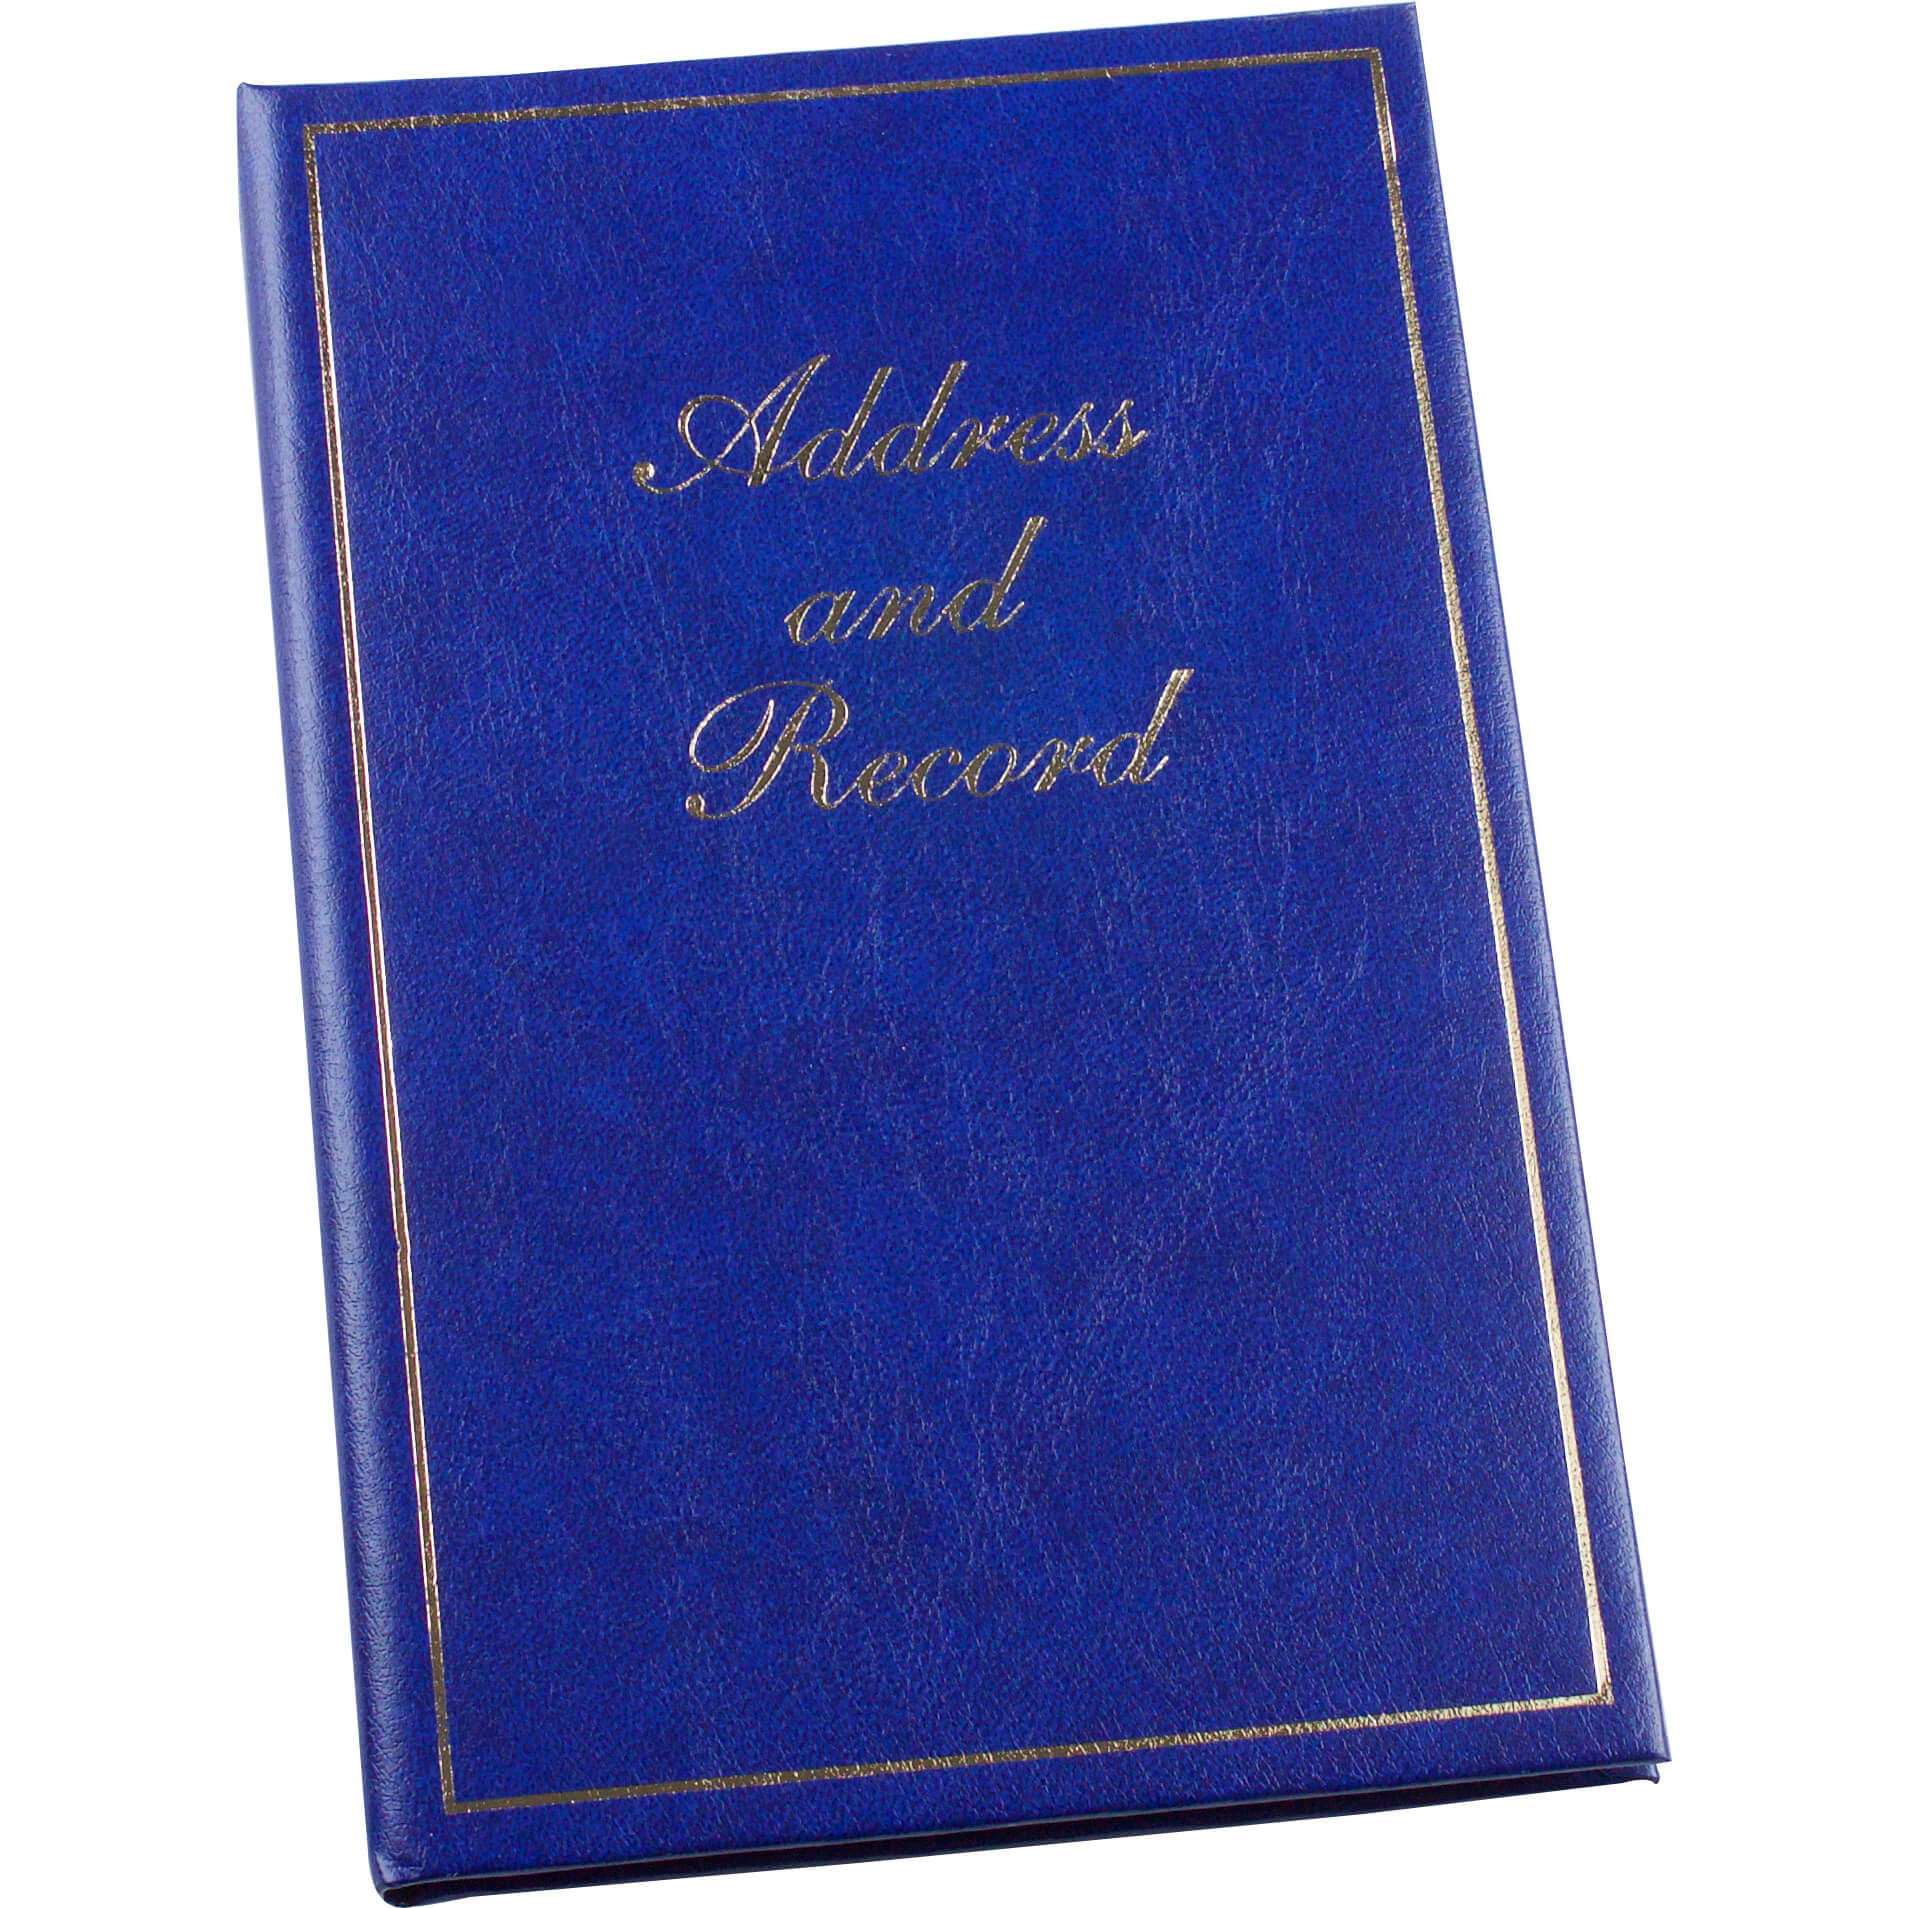 Esposti Address Book - Vinyl Padded Cover - Gold Letters - 3 Step Index for Christmas Card List Birthdays and Anniversaries - Blue - Size 135 x 195mm